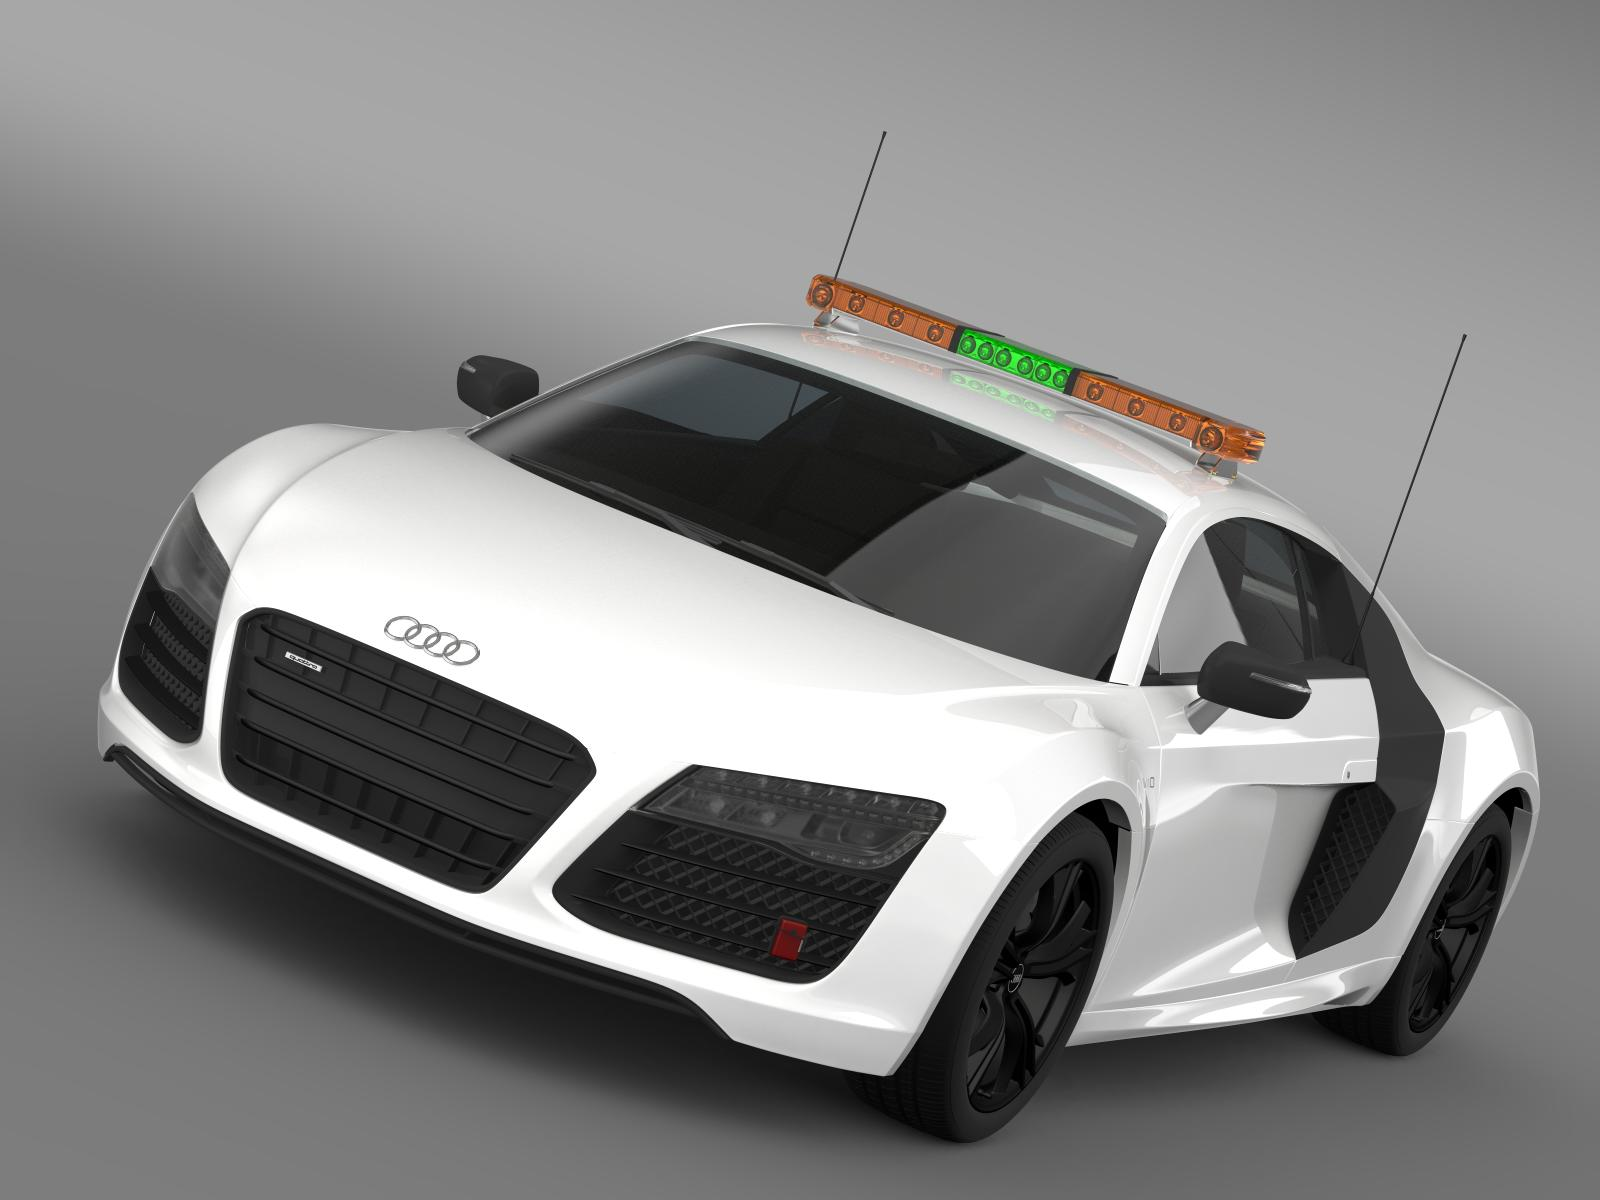 audi r8 v10plus safety car 3d model 3ds max fbx c4d lwo ma mb hrc xsi obj 204076